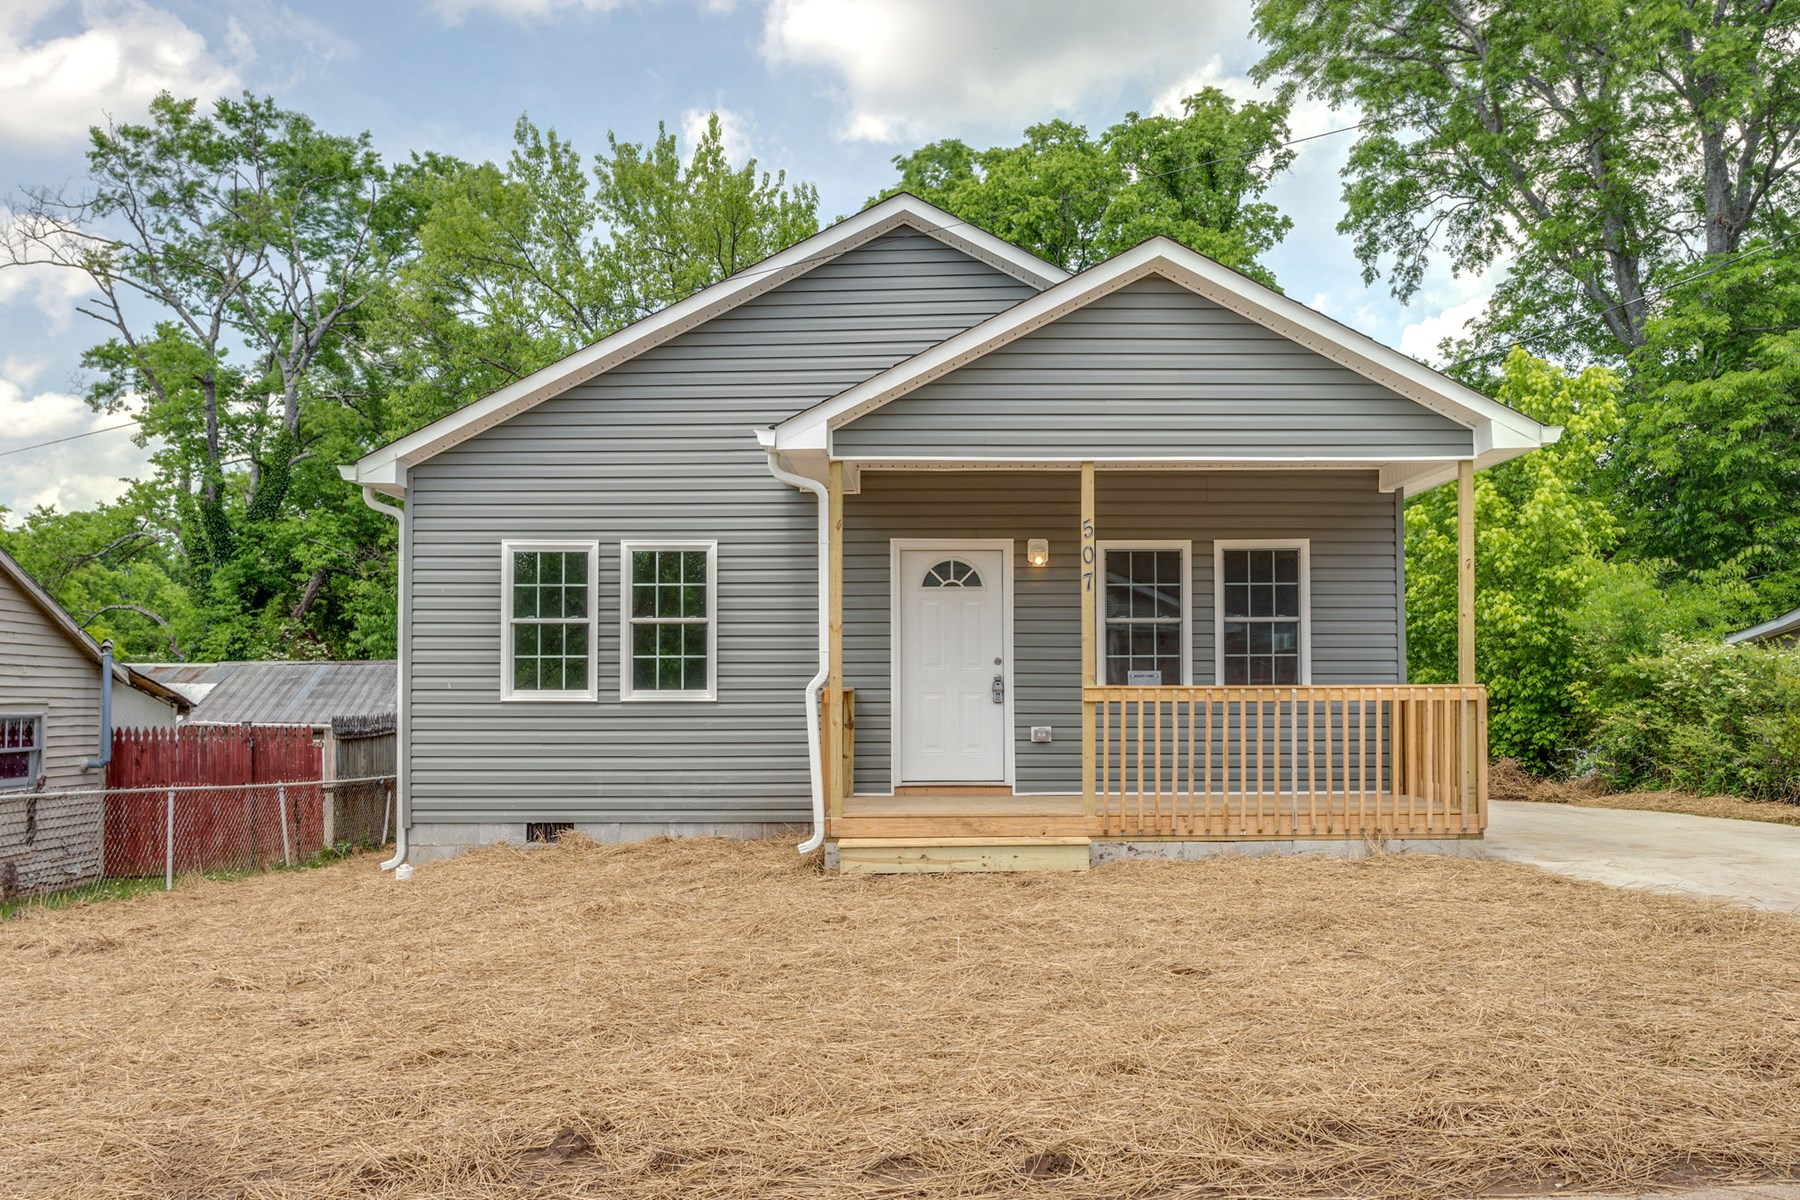 New Built Home for Sale, 3 Bedroom/2 Bath in Maury, County T